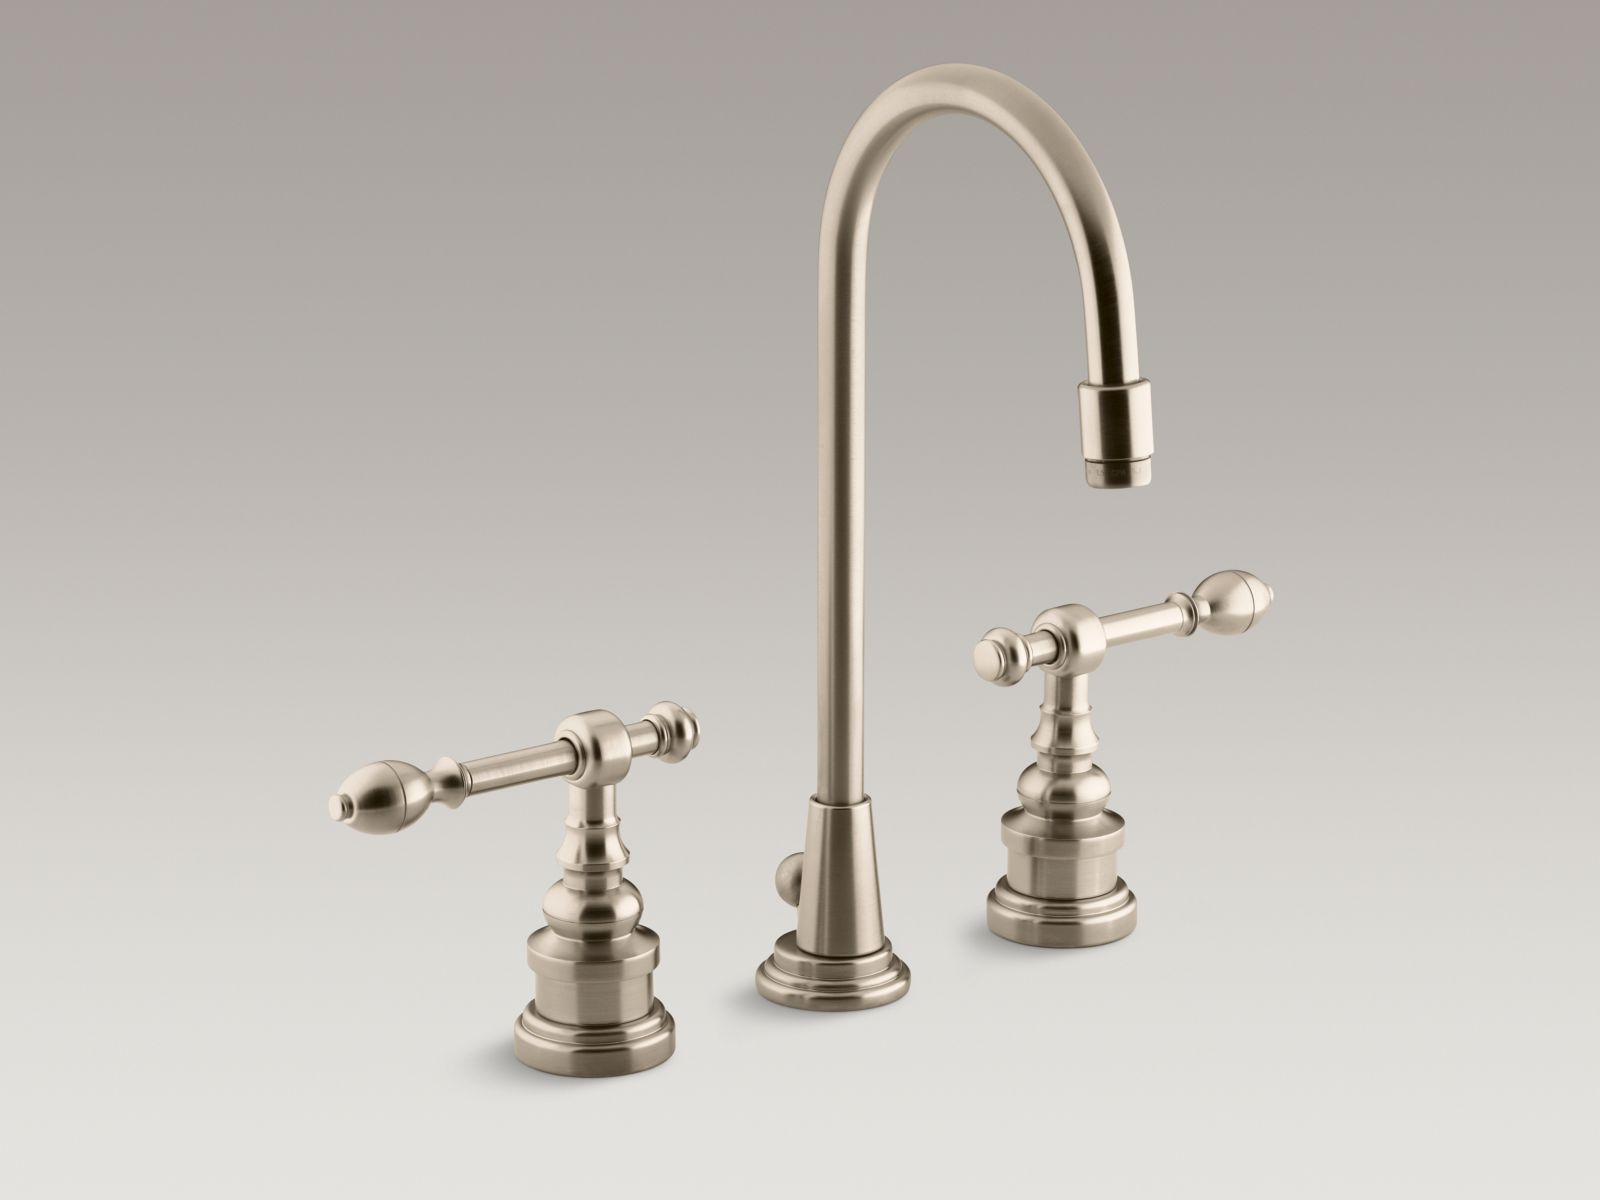 Kohler K-6813-4-BV IV Georges Brass Widespread Bathrom Sink Faucet with High Country Spout and Lever Handles Vibrant Brushed Bronze